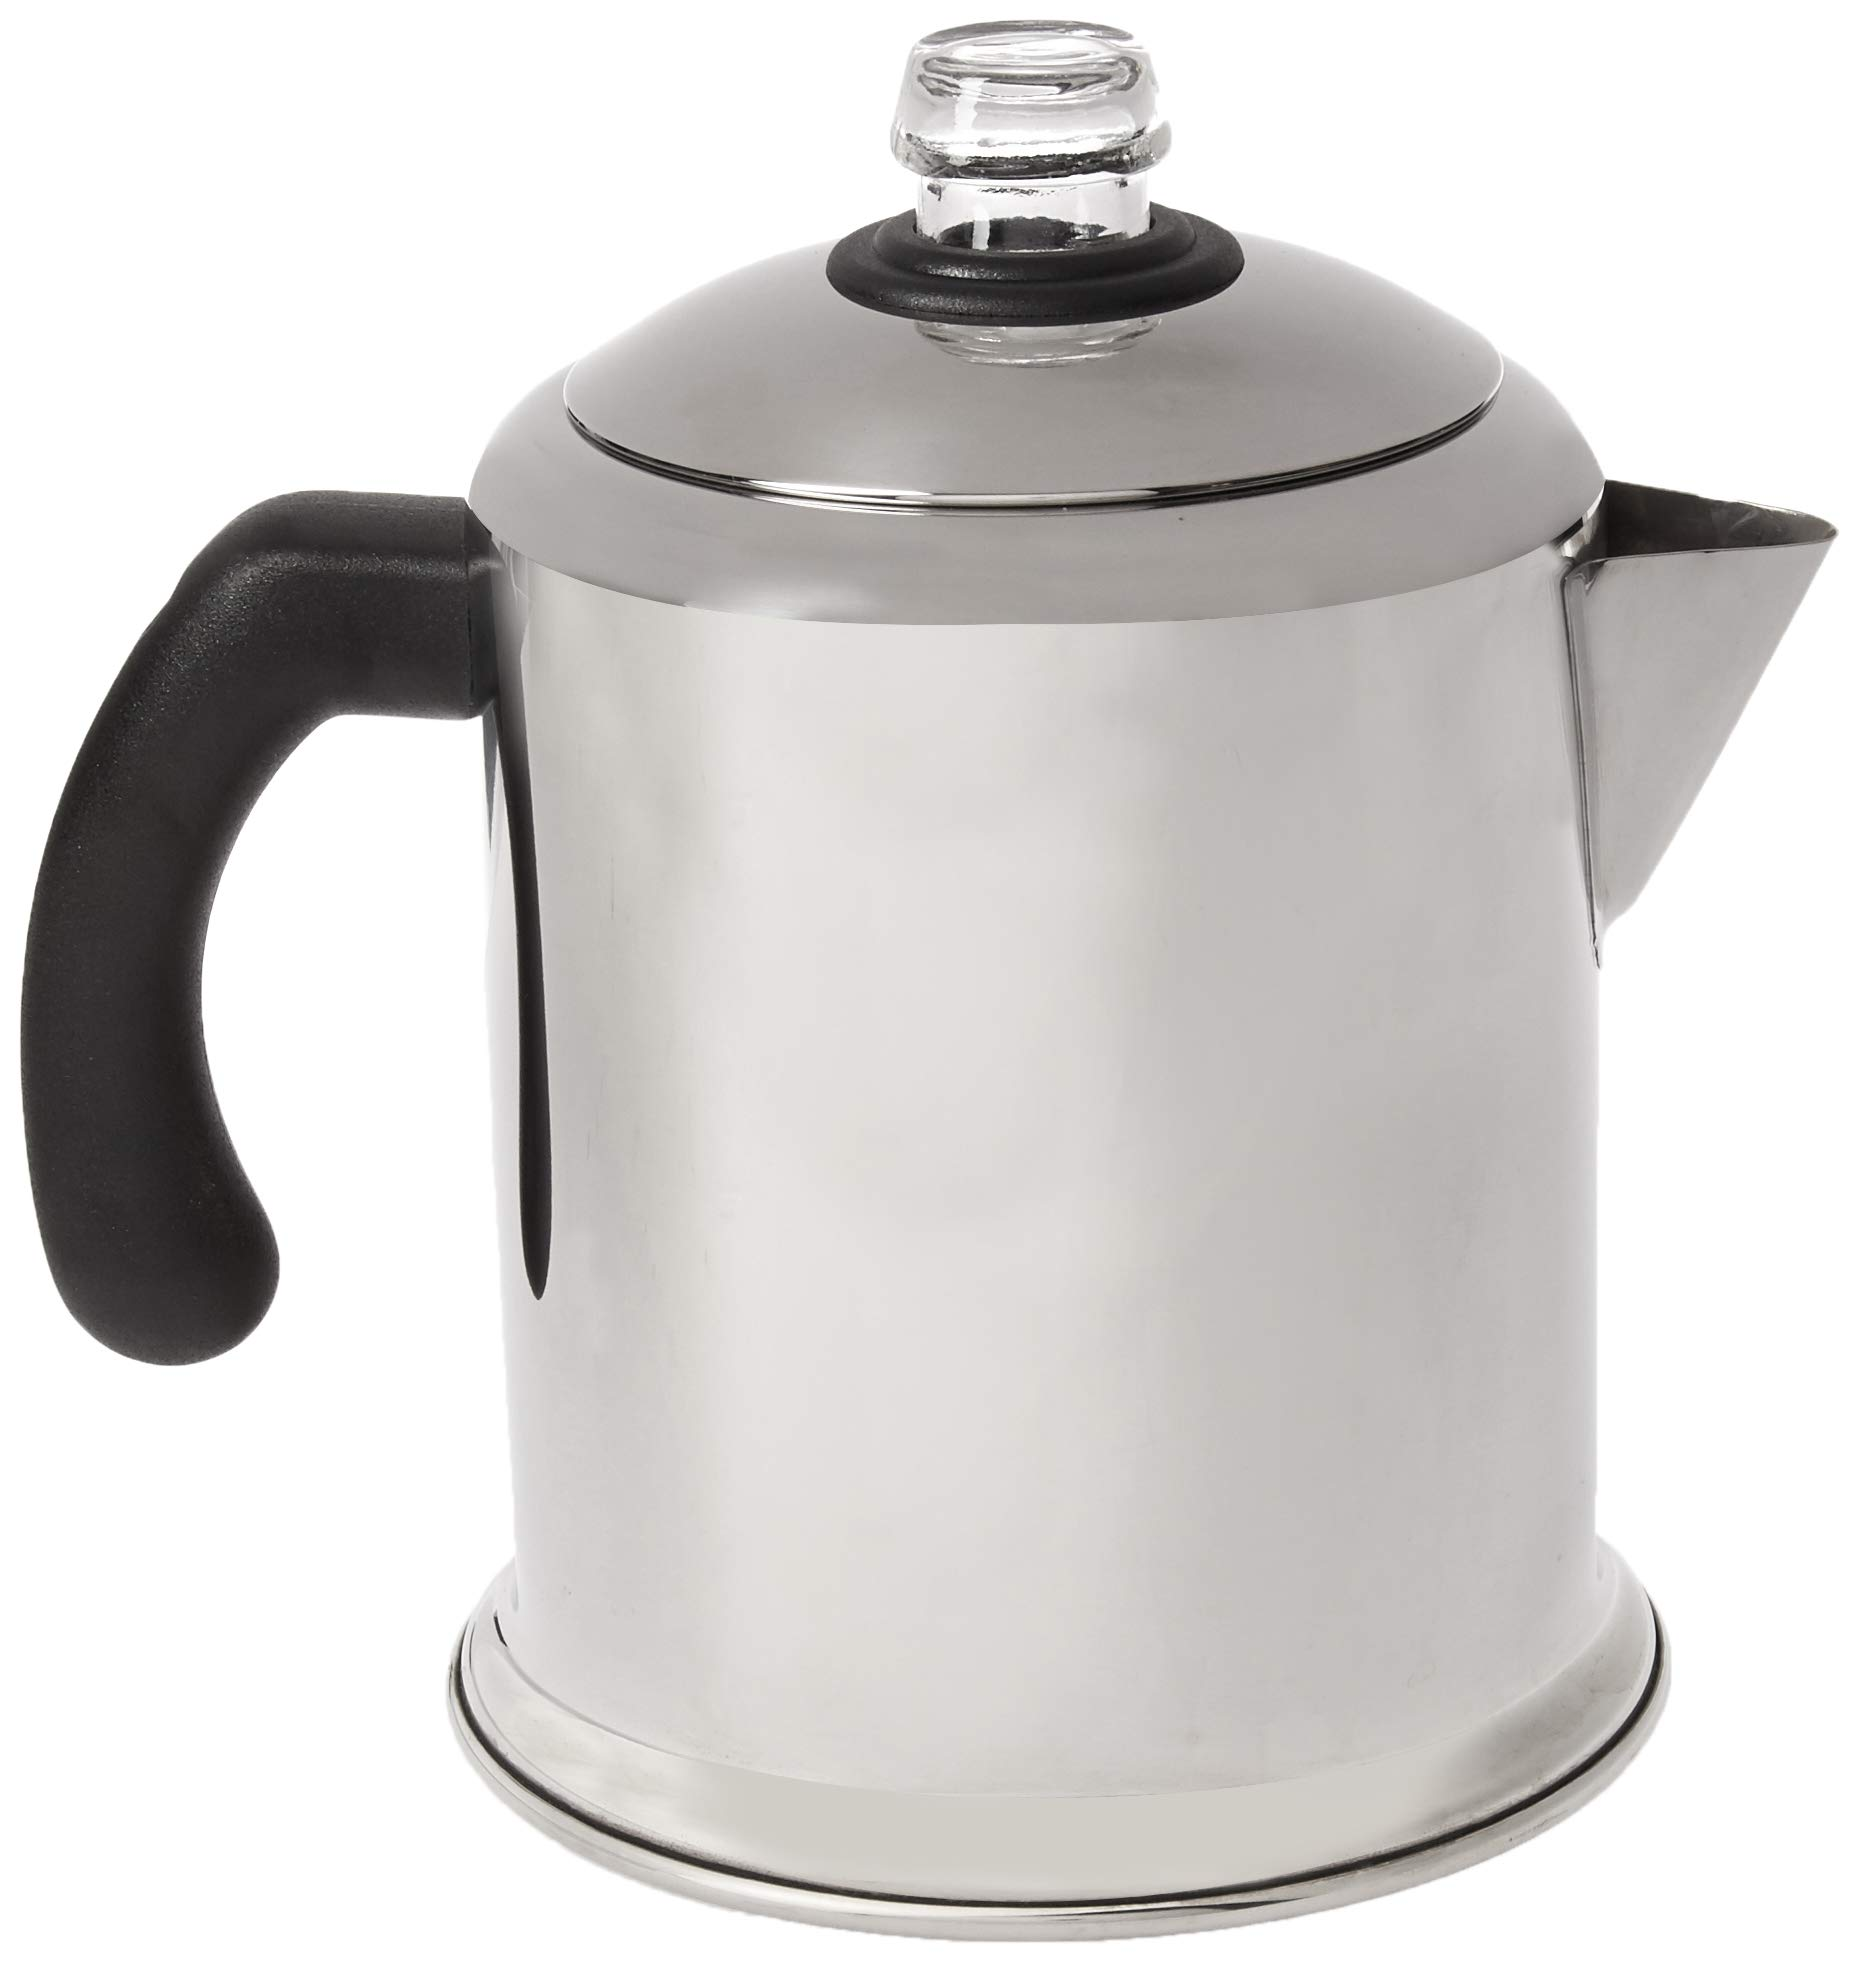 Farberware Classic Stainless Steel Yosemite 8-Cup Coffee Percolator product image